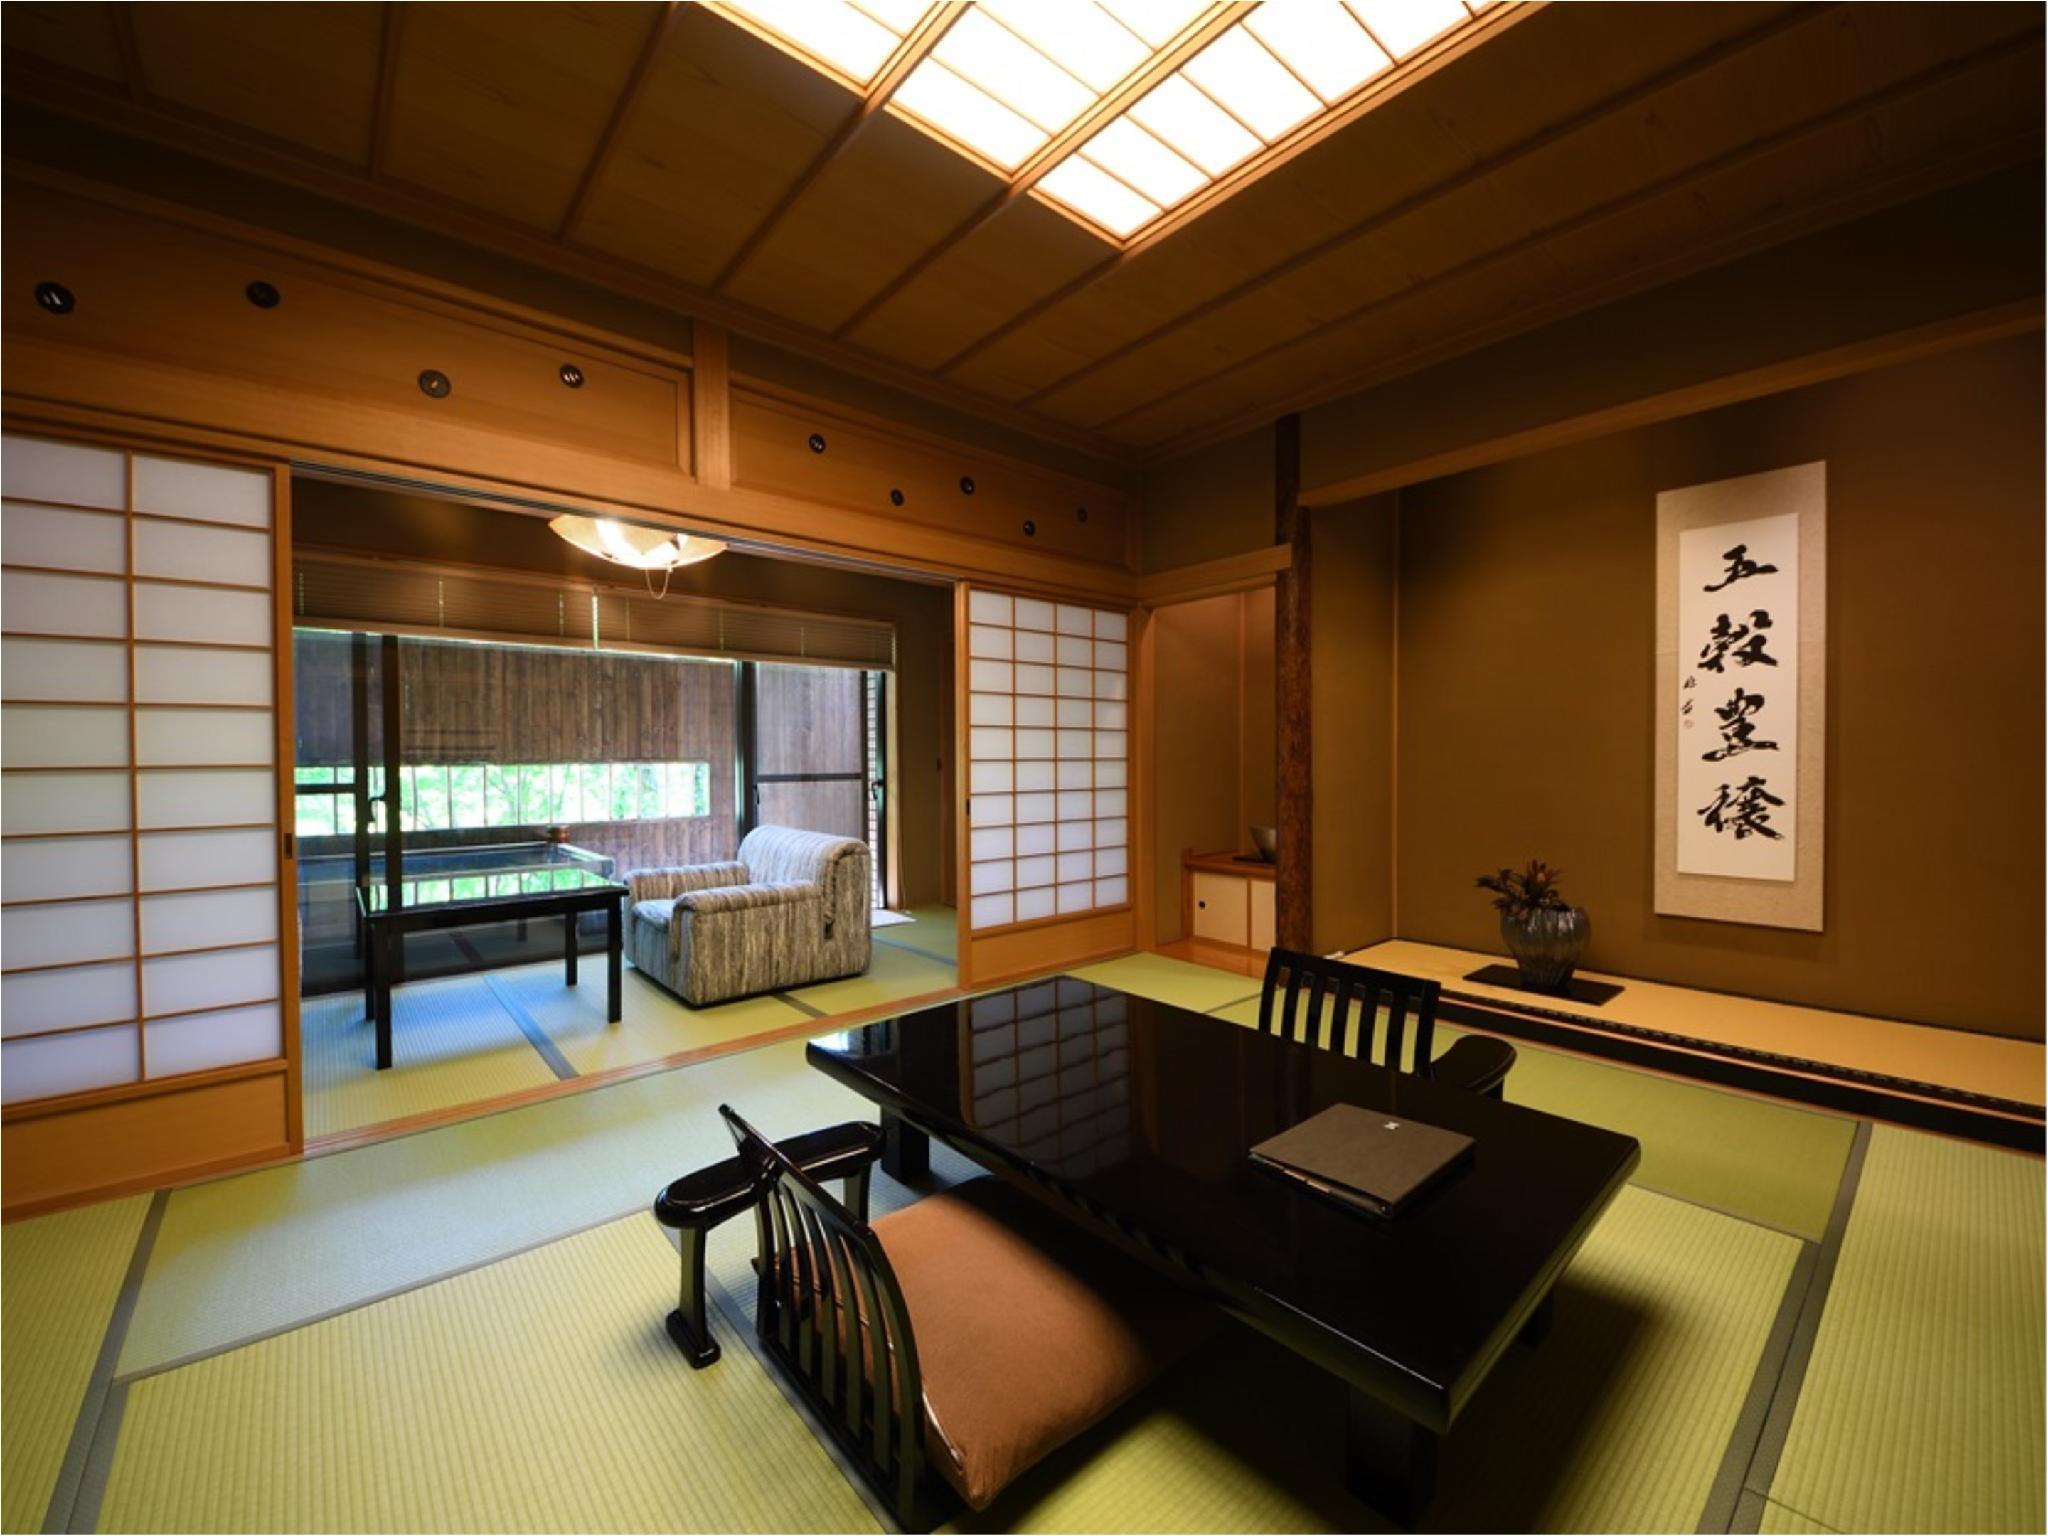 다다미 침대 객실(별채/특별실/노천탕) (Detached Special Japanese/Western-style Room with Open-air Bath)